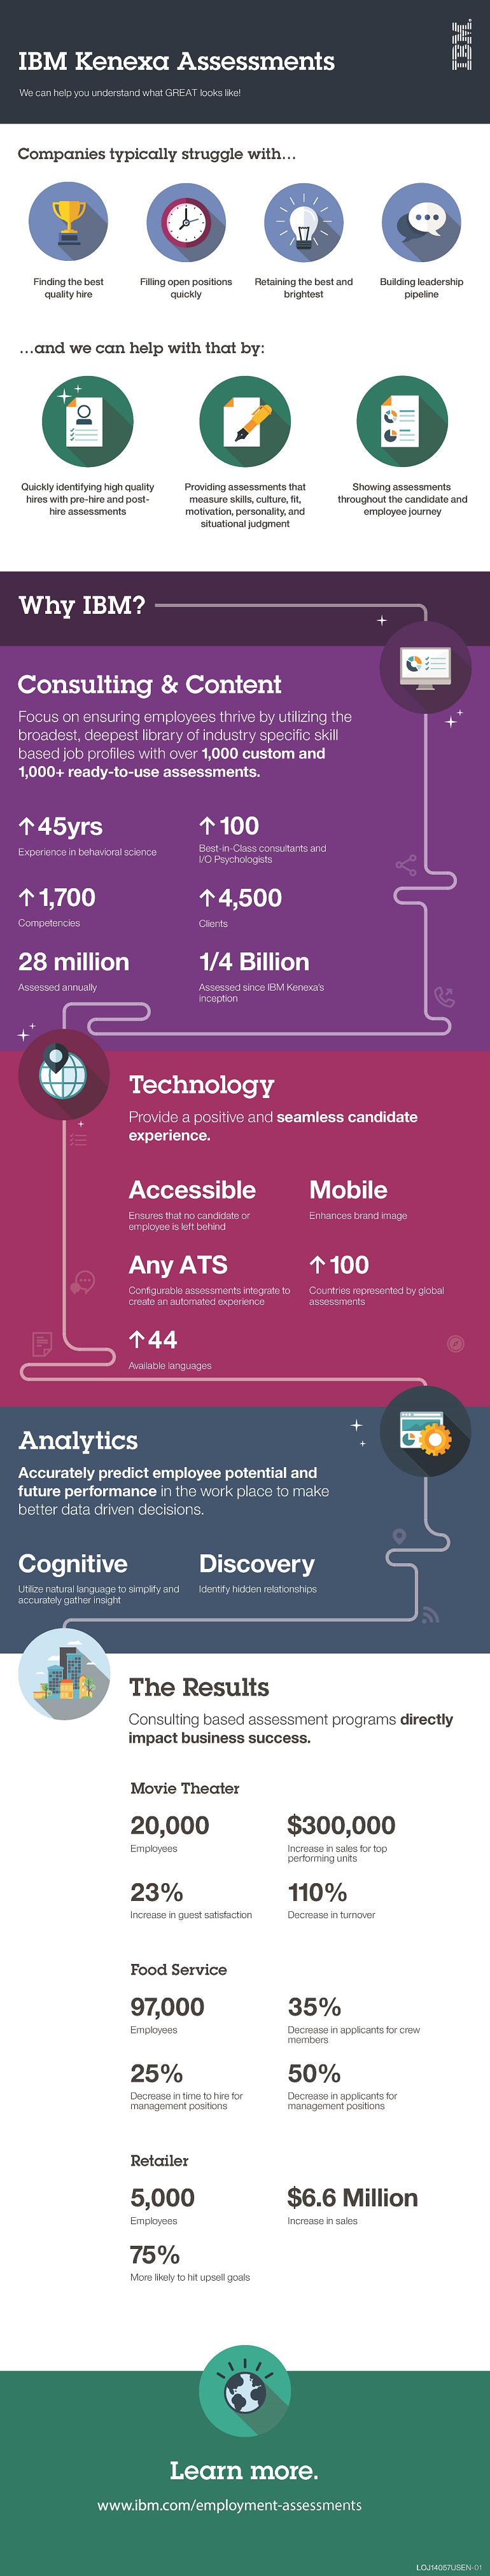 Infographic displaying the IBM Kenexa Assessments guide